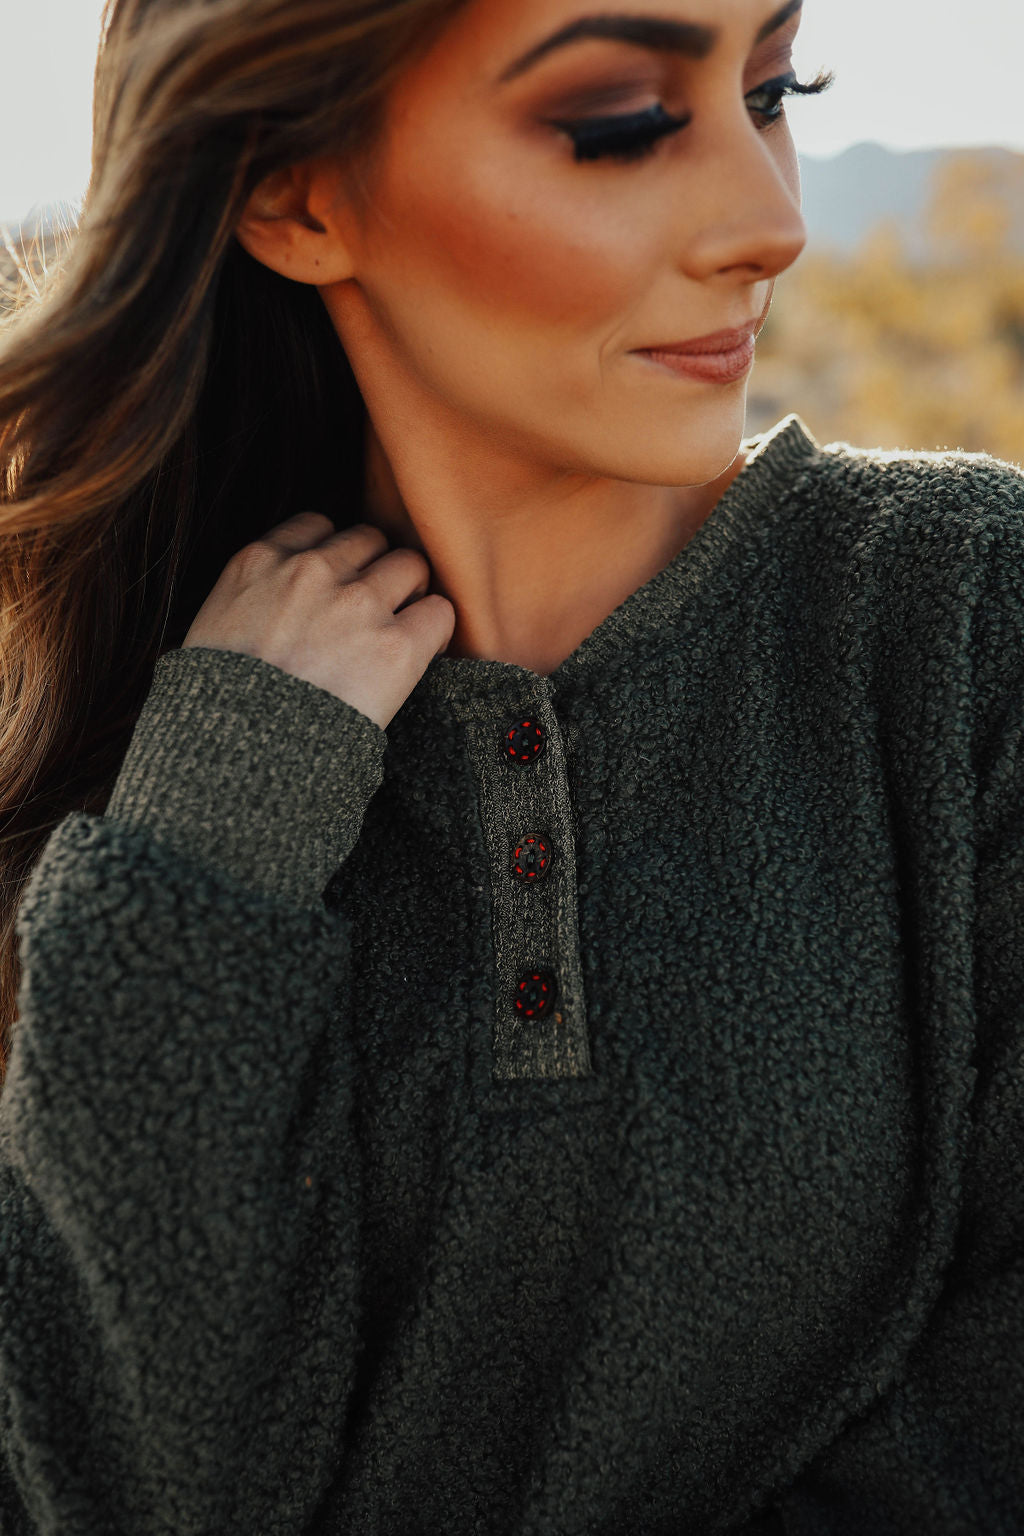 THE STANFORD FLEECE PULLOVER IN OLIVE